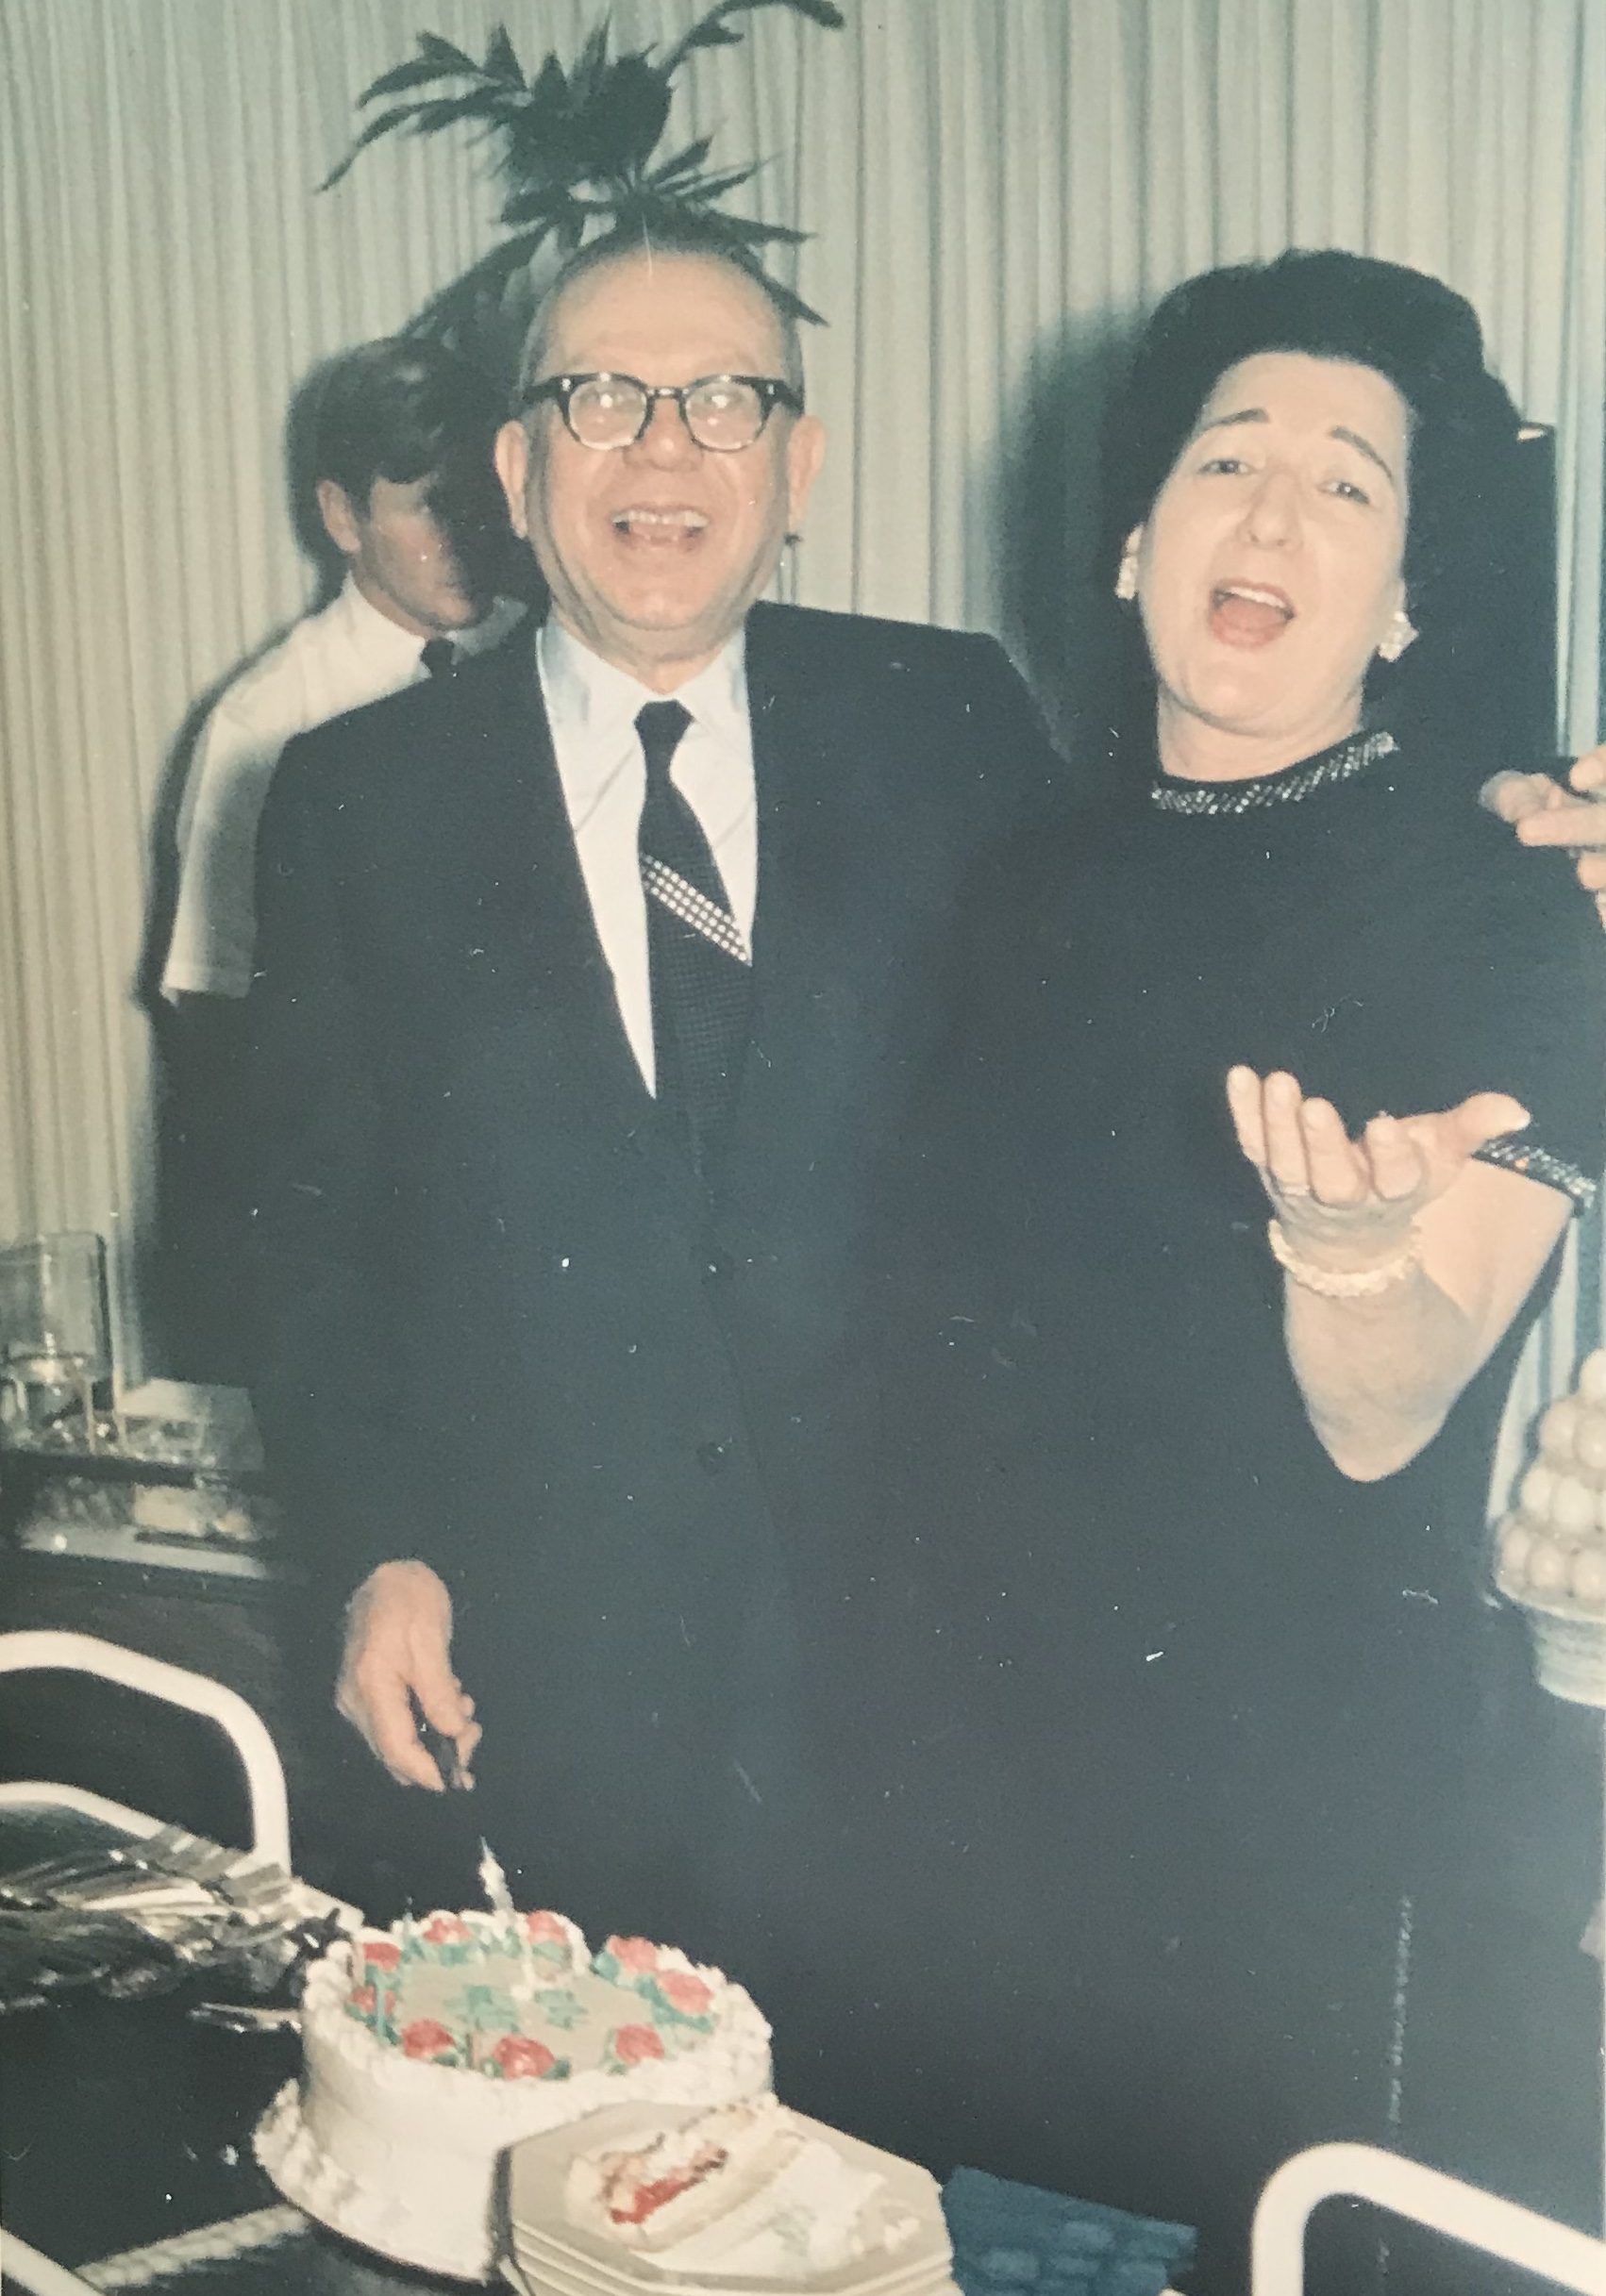 Evelyn & Saul Reinfeld celebrating their 40th wedding anniversary, 1968.